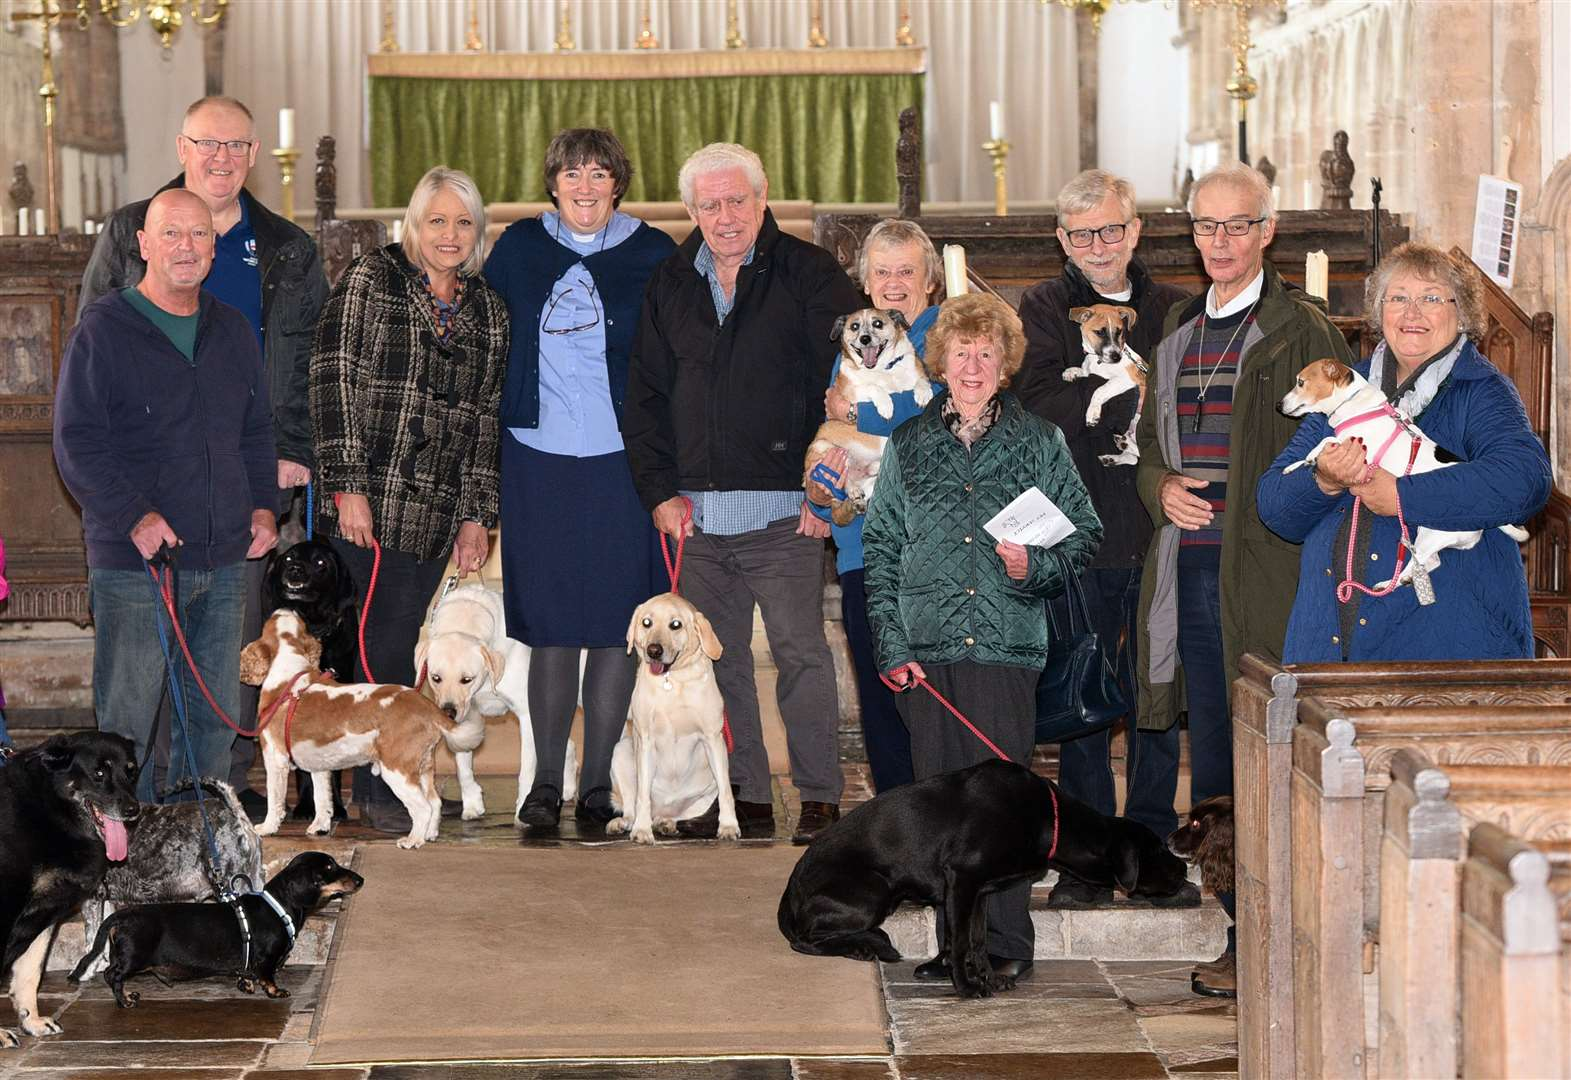 Tails wagging as pets join owners for Sunday service